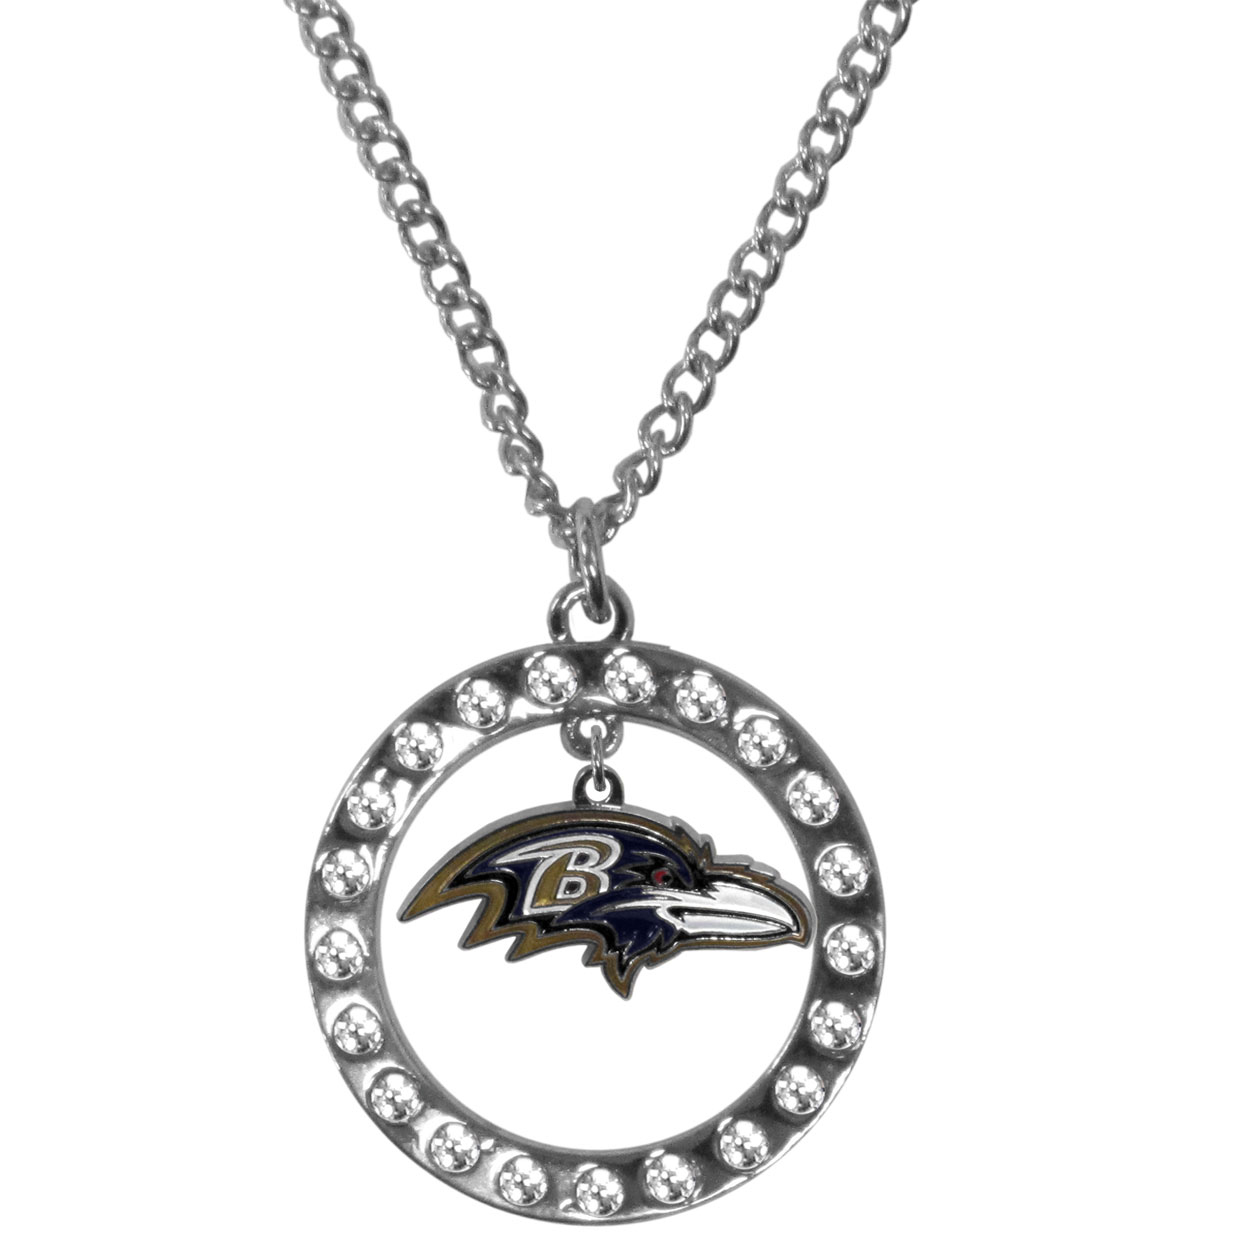 Baltimore Ravens Rhinestone Hoop Necklaces - Our Baltimore Ravens rhinestone hoop necklace comes on an 18 inch chain and features a hoop covered in rhinestones with a high polish chrome finish and a cast and enameled team charm dangling in the center.